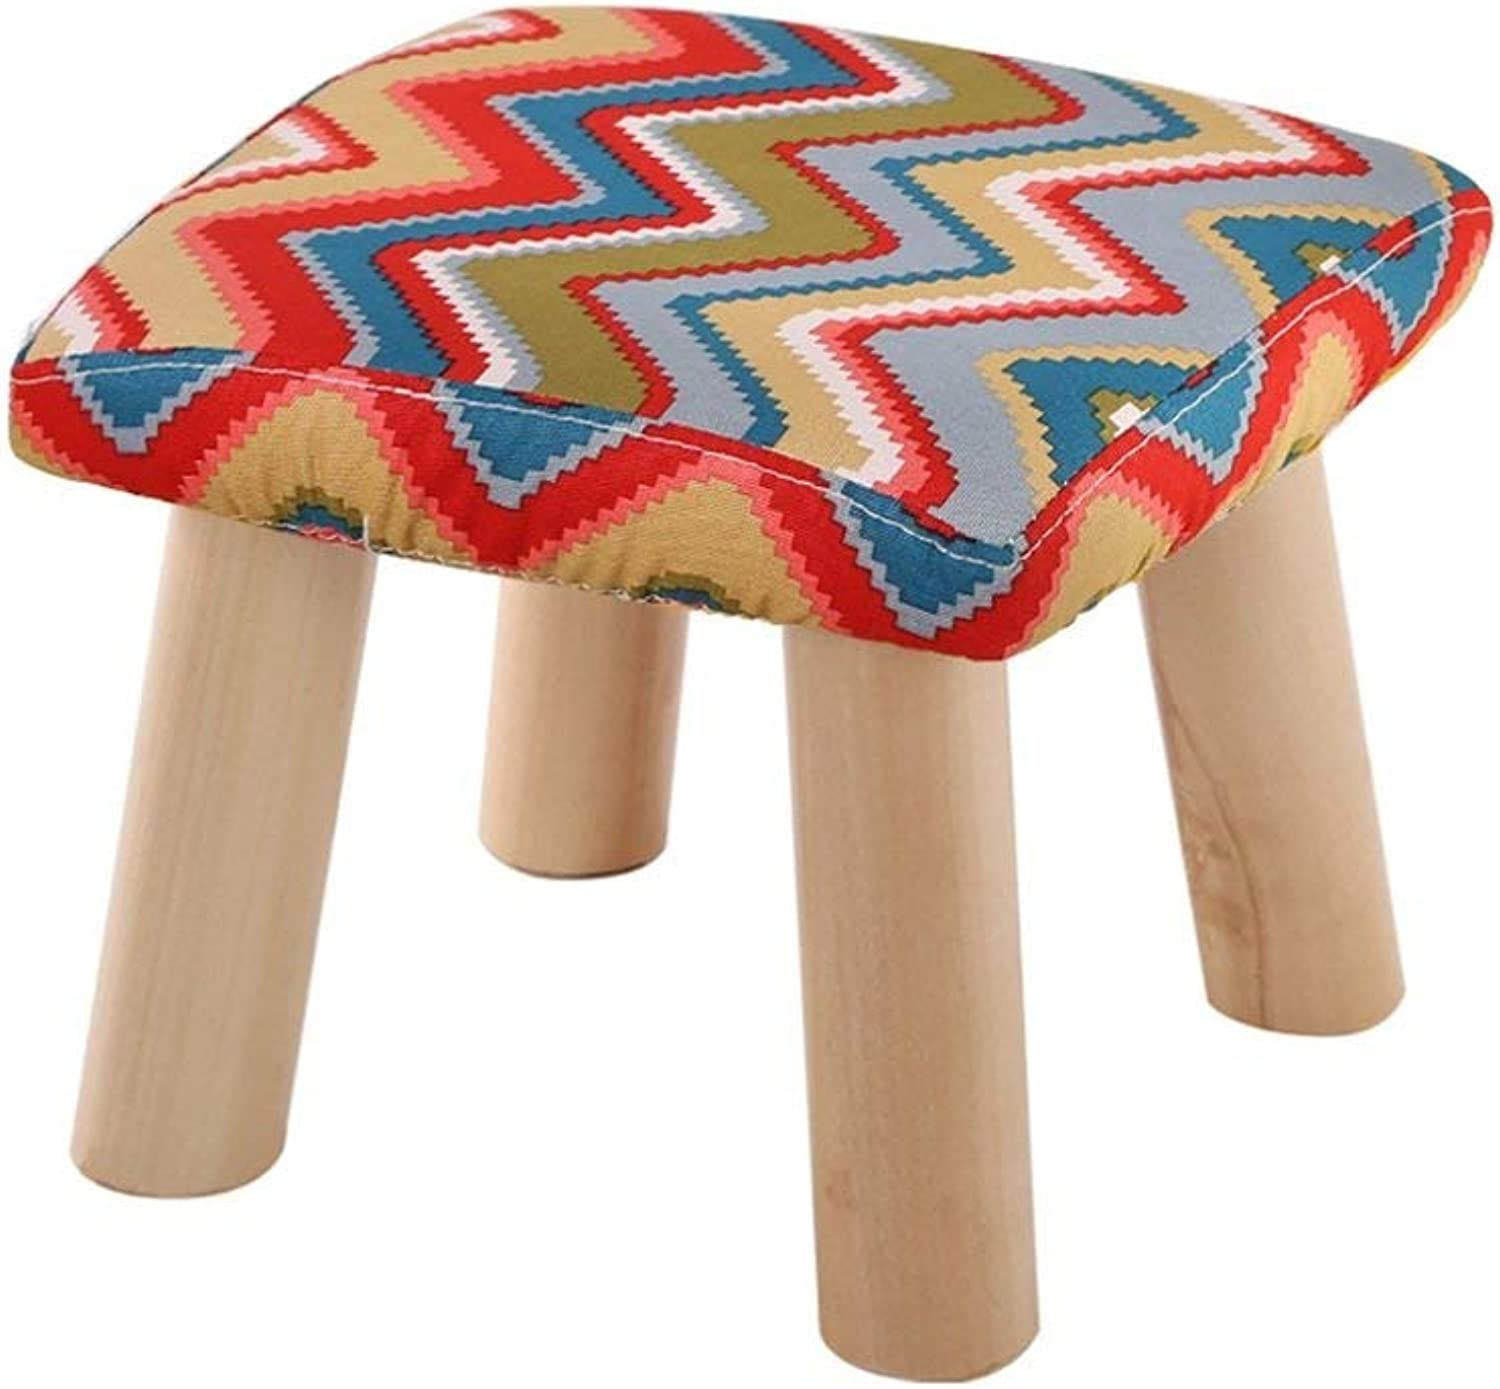 GJD Sofa Stool Solid Wood Stool Cotton and Linen Bench Low Stool shoes for shoes Cloth Washable Household Square Stool Strong and Sturdy Foldable Leather Sofa Stool (color    6)